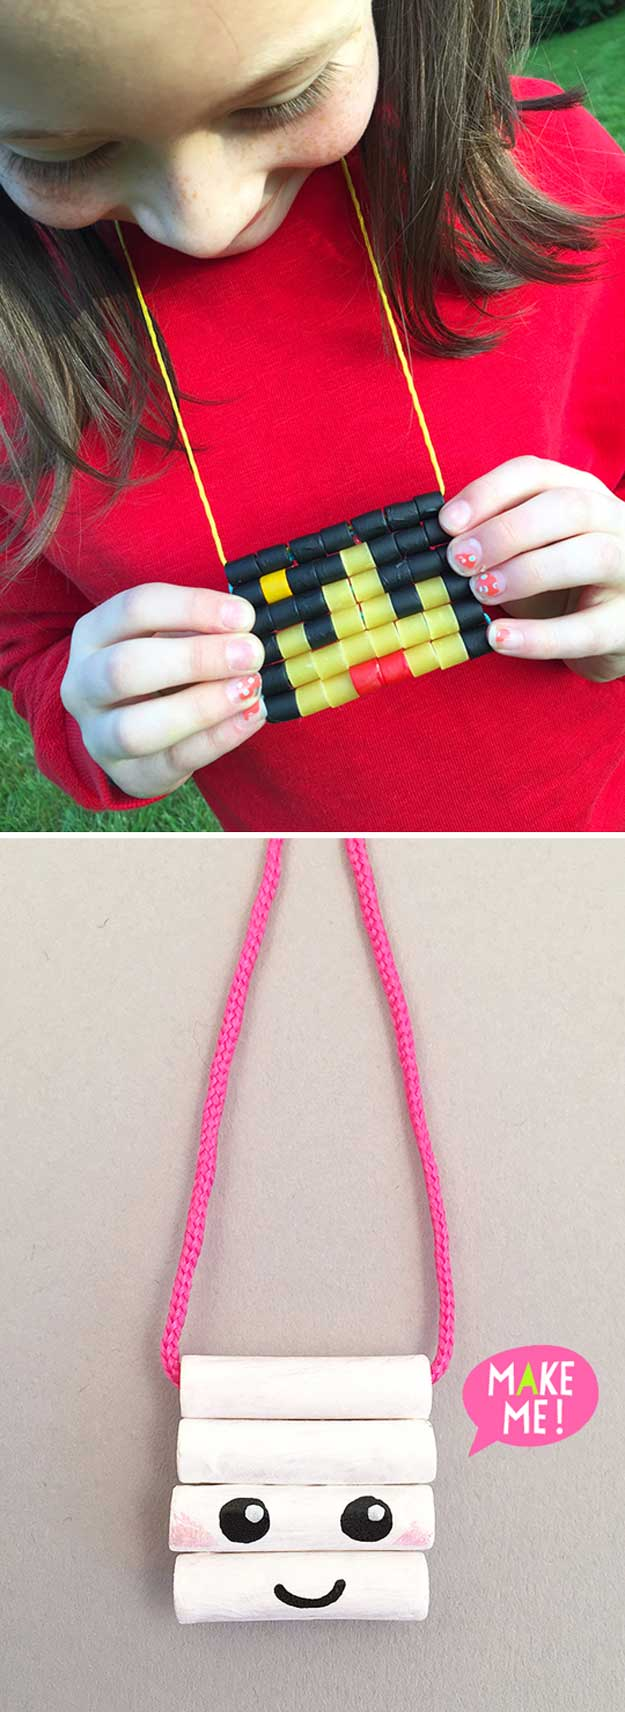 Painted Macaroni Necklaces | 22 Cheap DIY Jewelry Projects for Girls